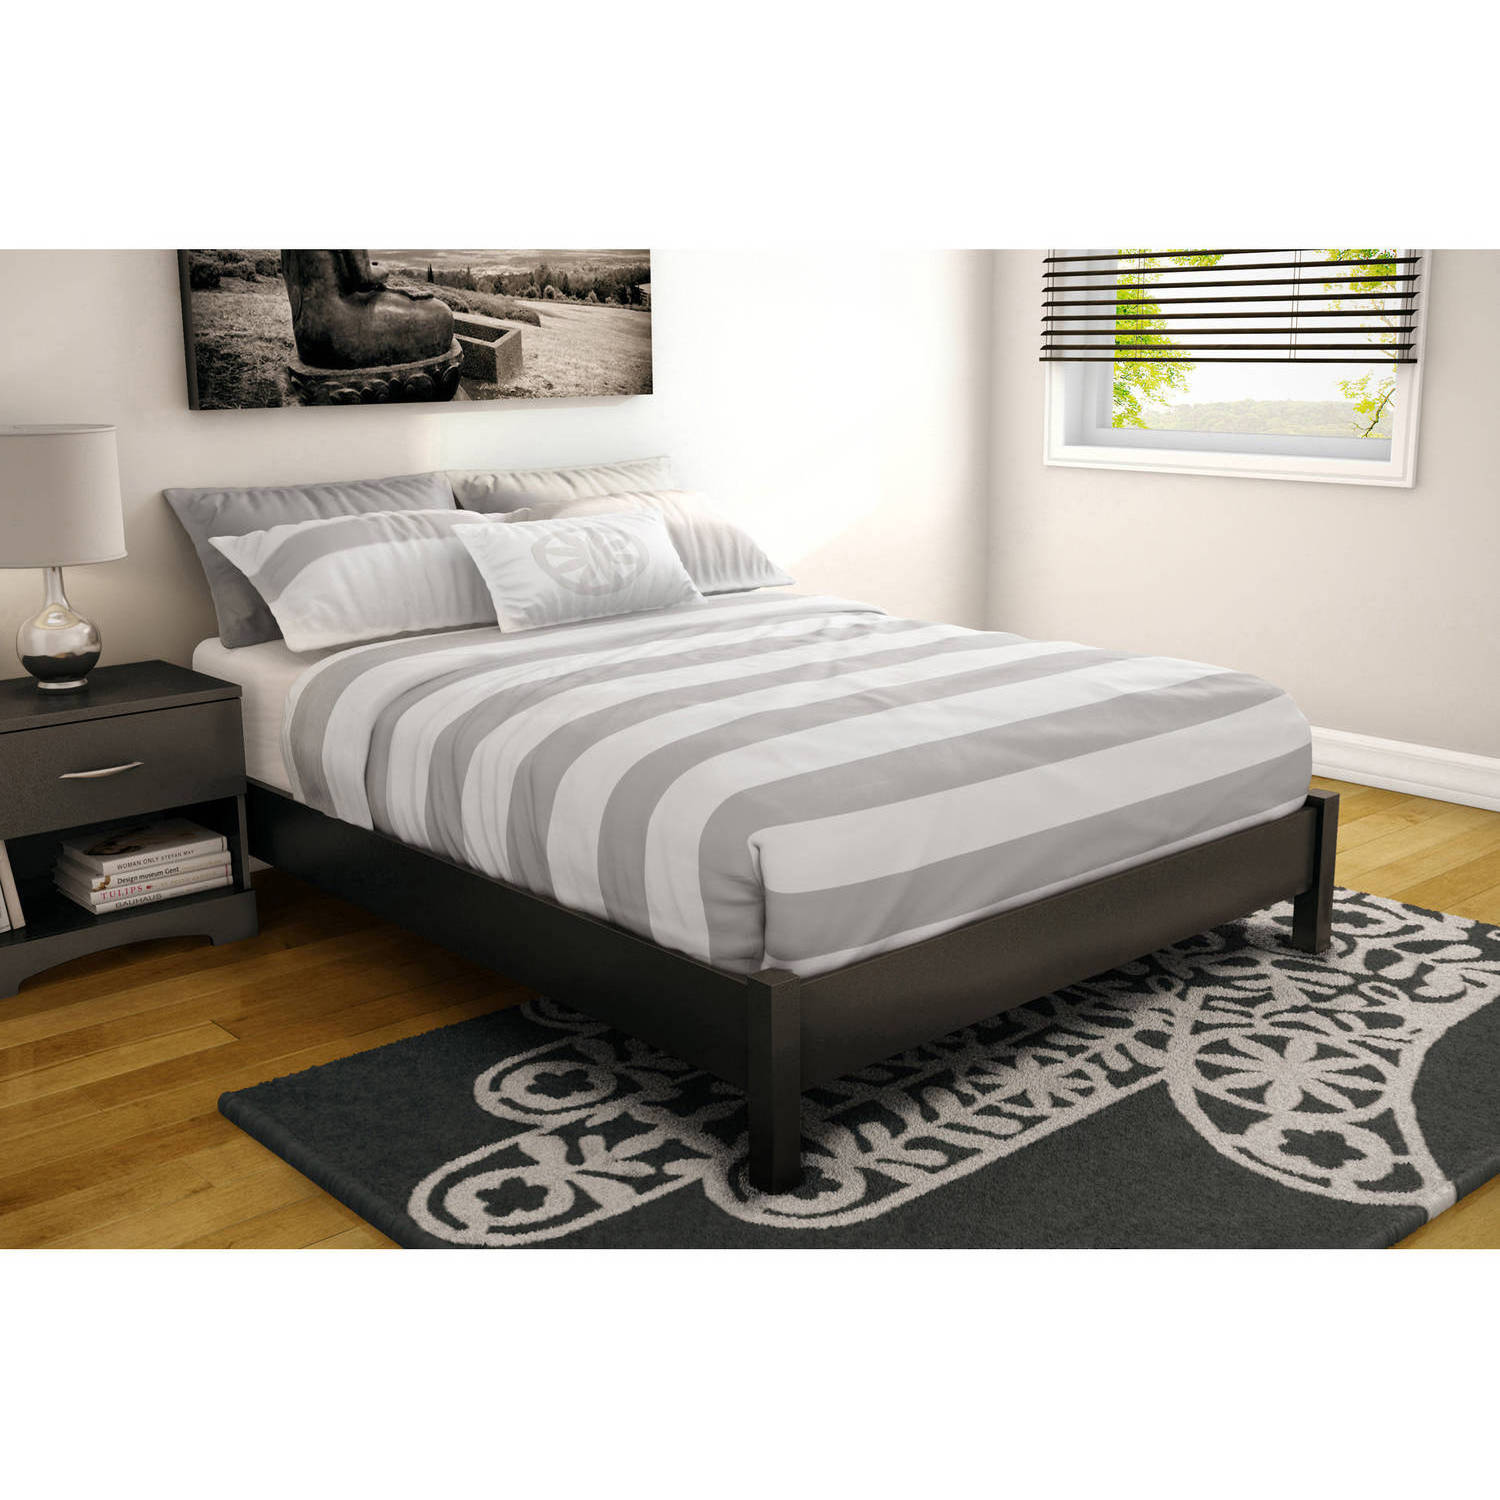 South Shore SoHo Full Platform Bed, 54'', Multiple Finishes